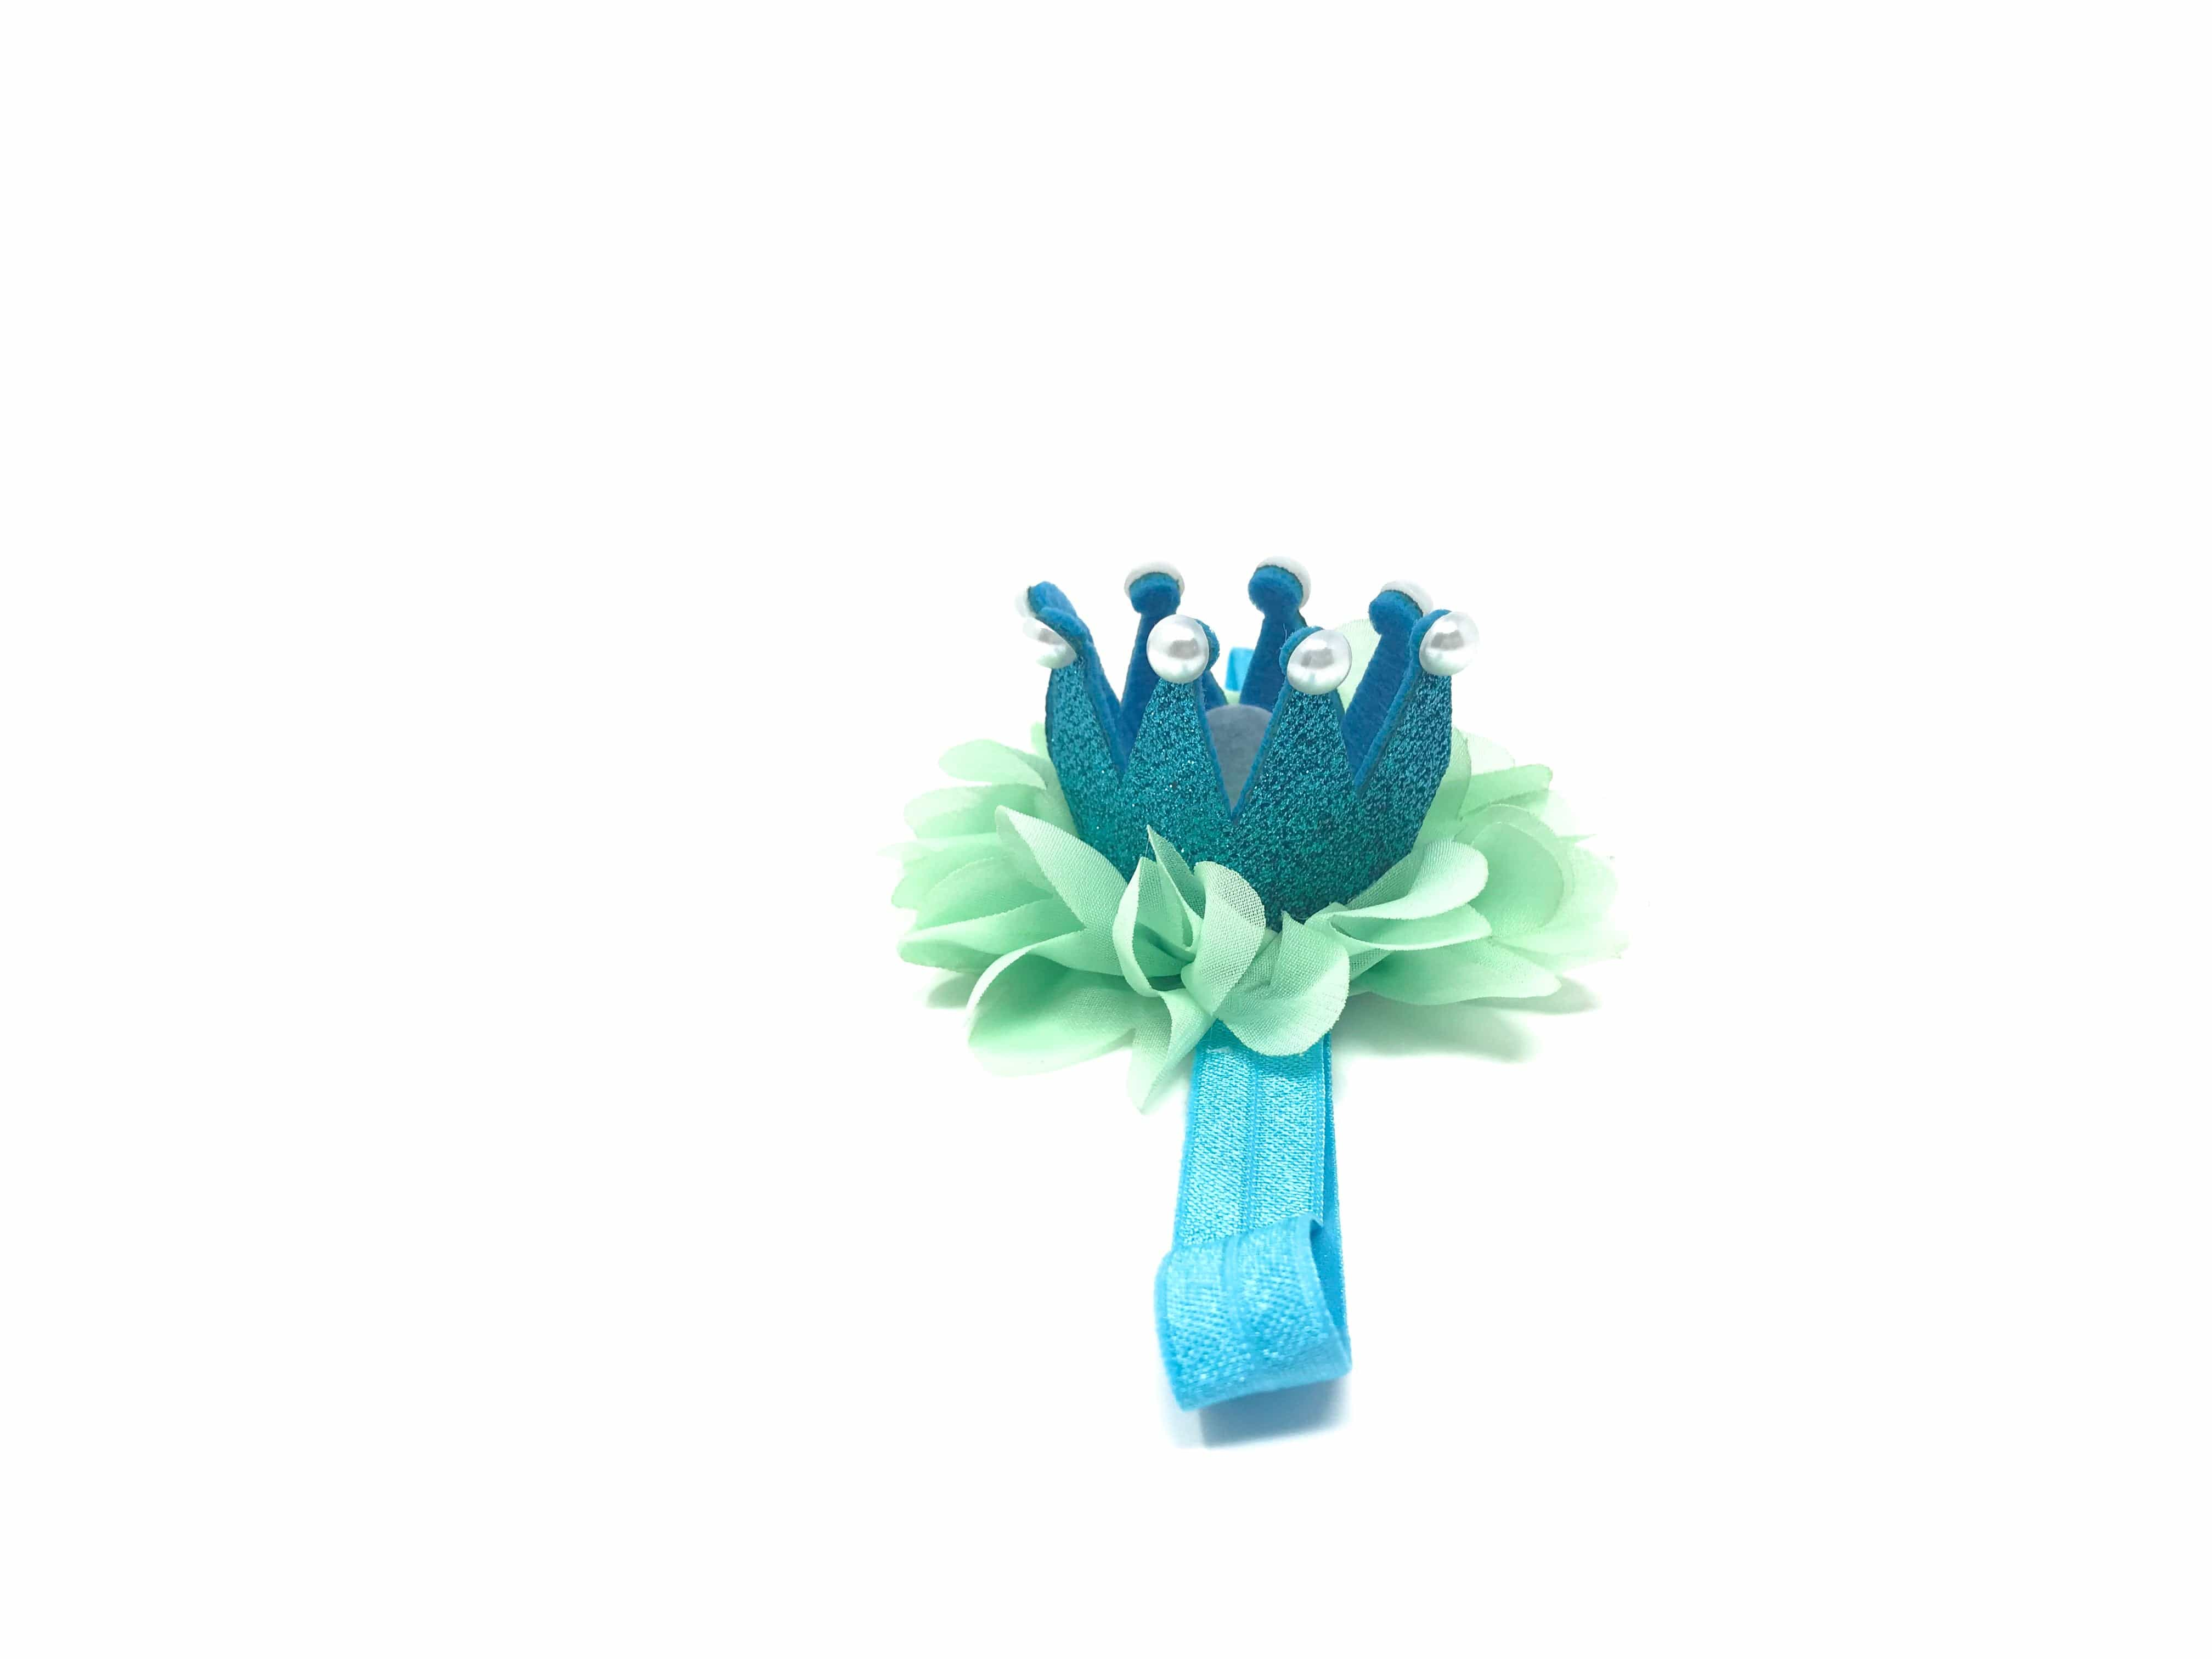 frog prince crown headband; blue green pearls crown headband tutu joli with tutu skirt for babies